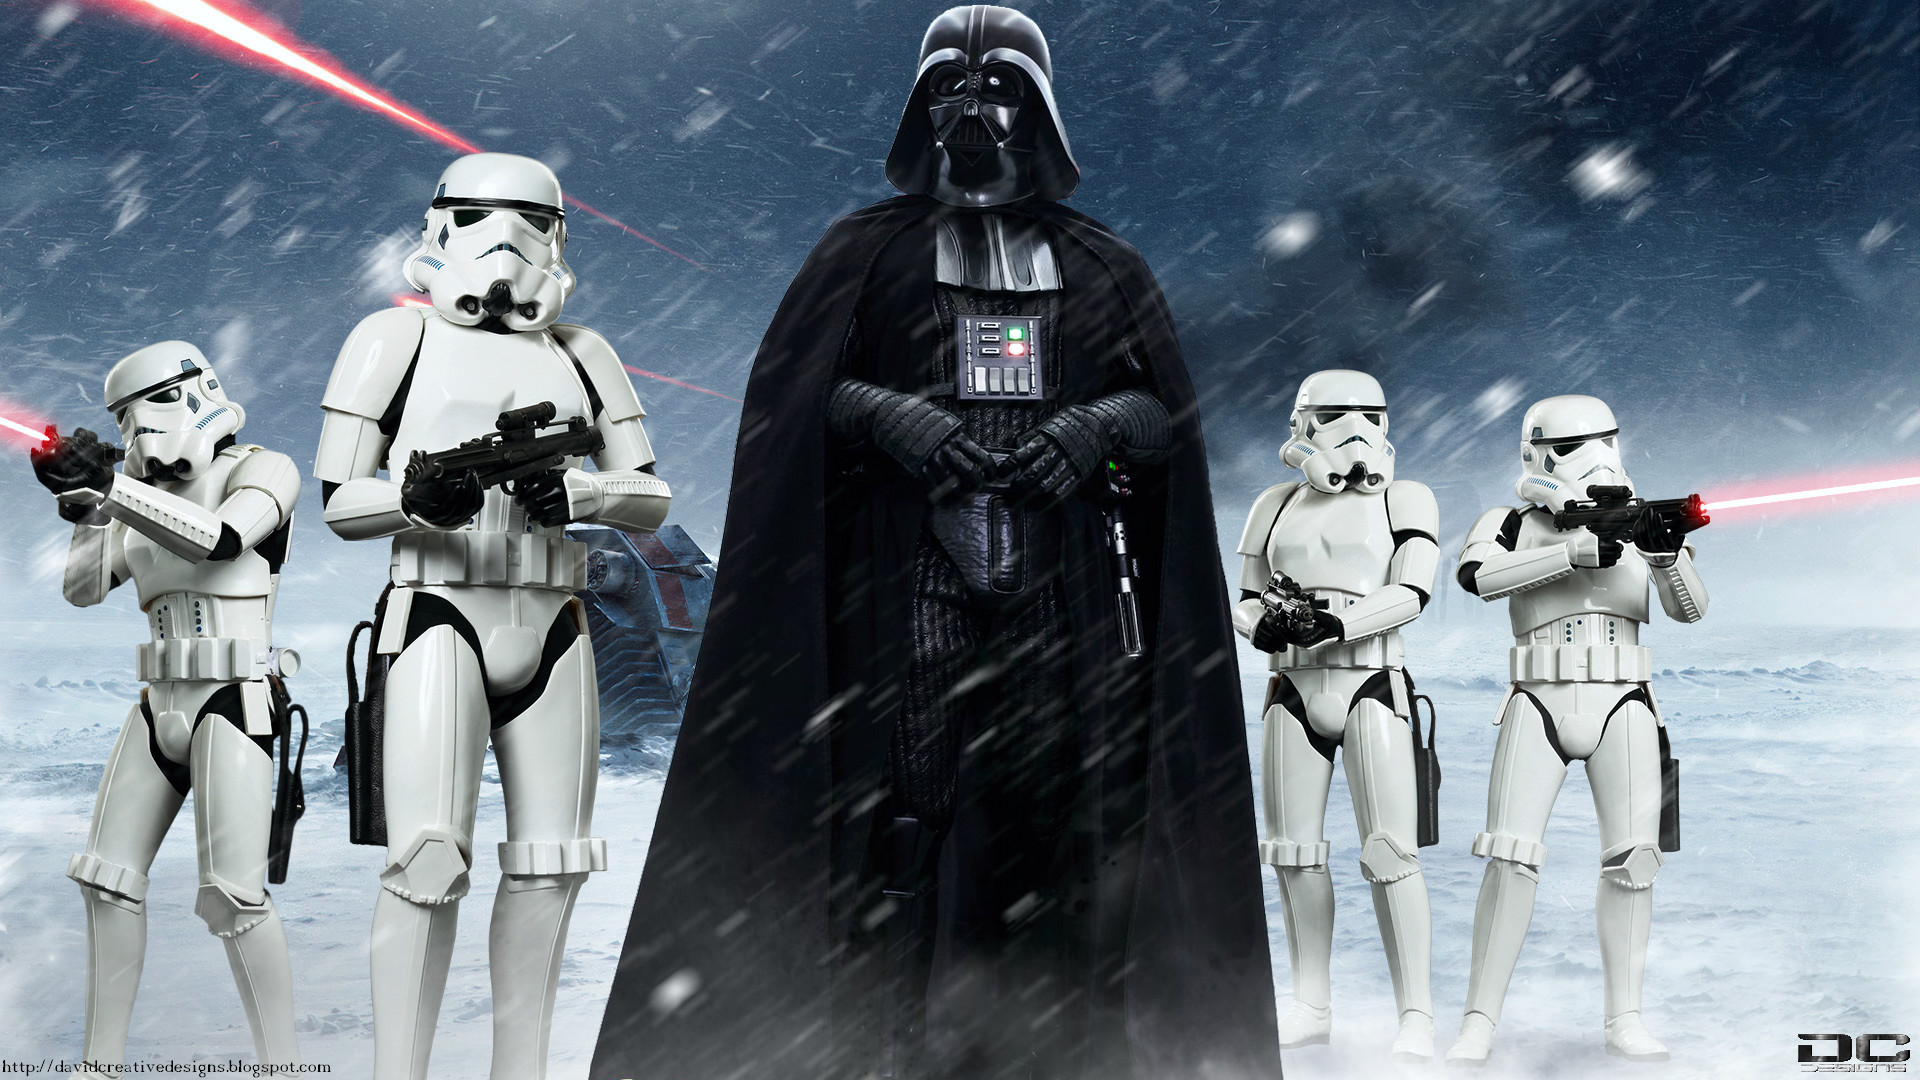 Darth Vader Wallpapers, HD Images Collection of Darth Vader: 2743670 by  Bill Kimberlin